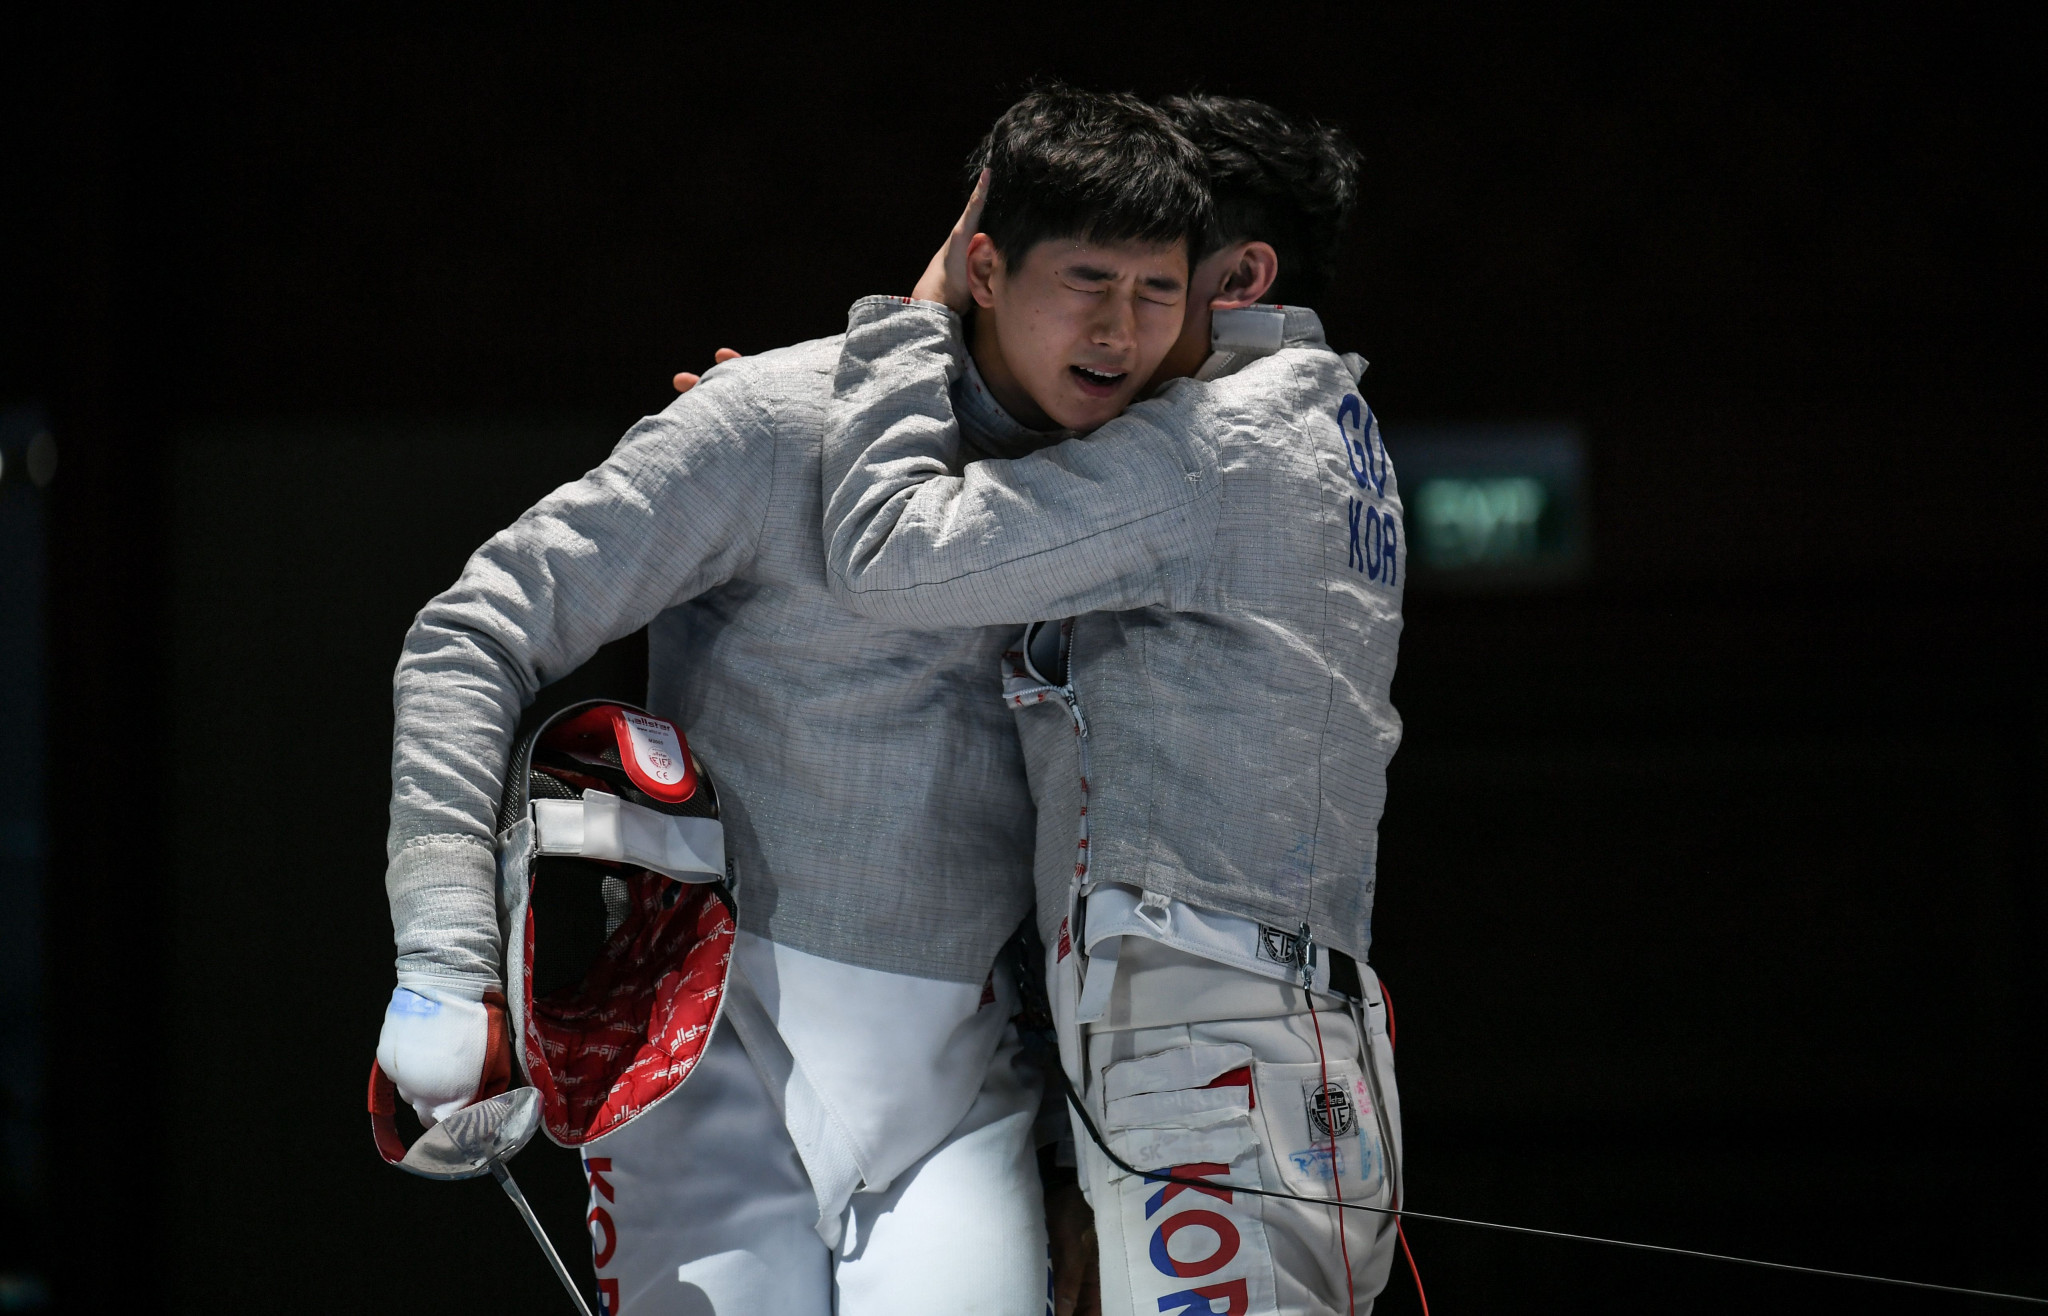 South Korea defeat hosts Hungary in team final at FIE Men's Sabre World Cup